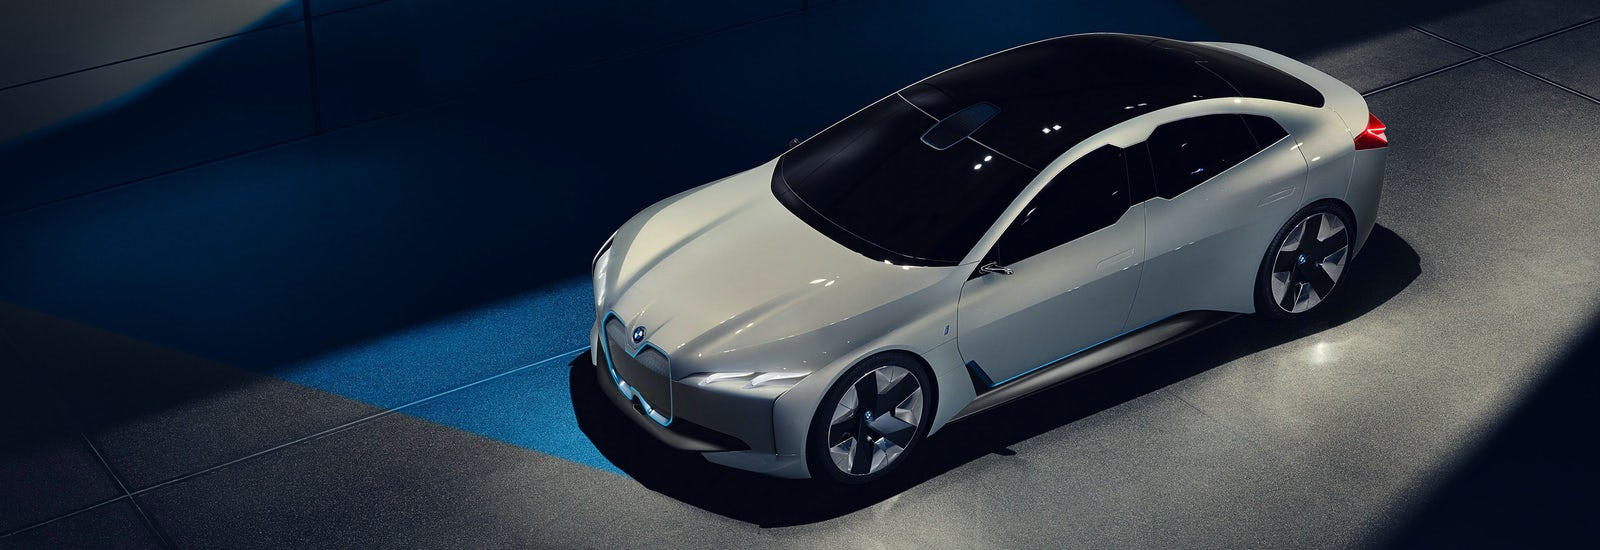 2021 Bmw I5 Electric Car Price Specs Release Date Carwow